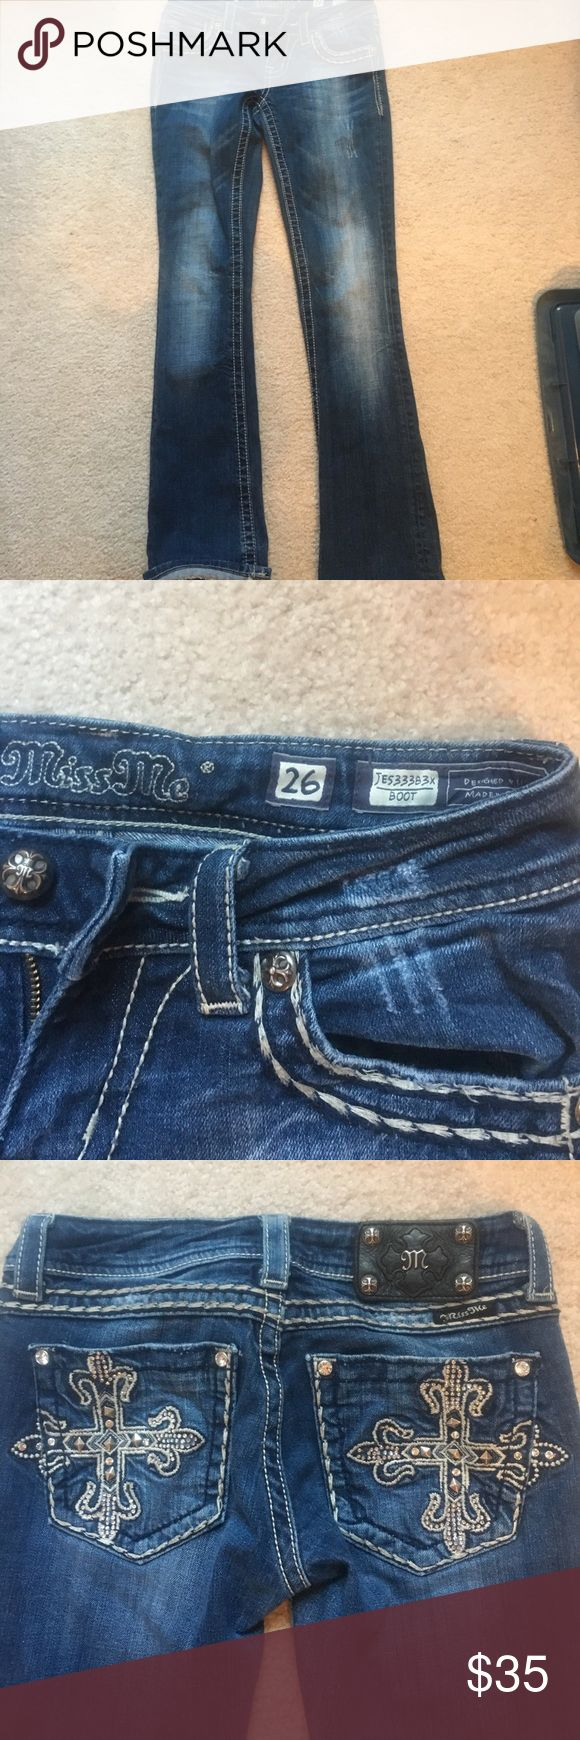 Miss Me jeans size 26 Size 26 cute boot cut Miss Me Jeans! Don't fit me anymore! :( Miss Me Jeans Boot Cut